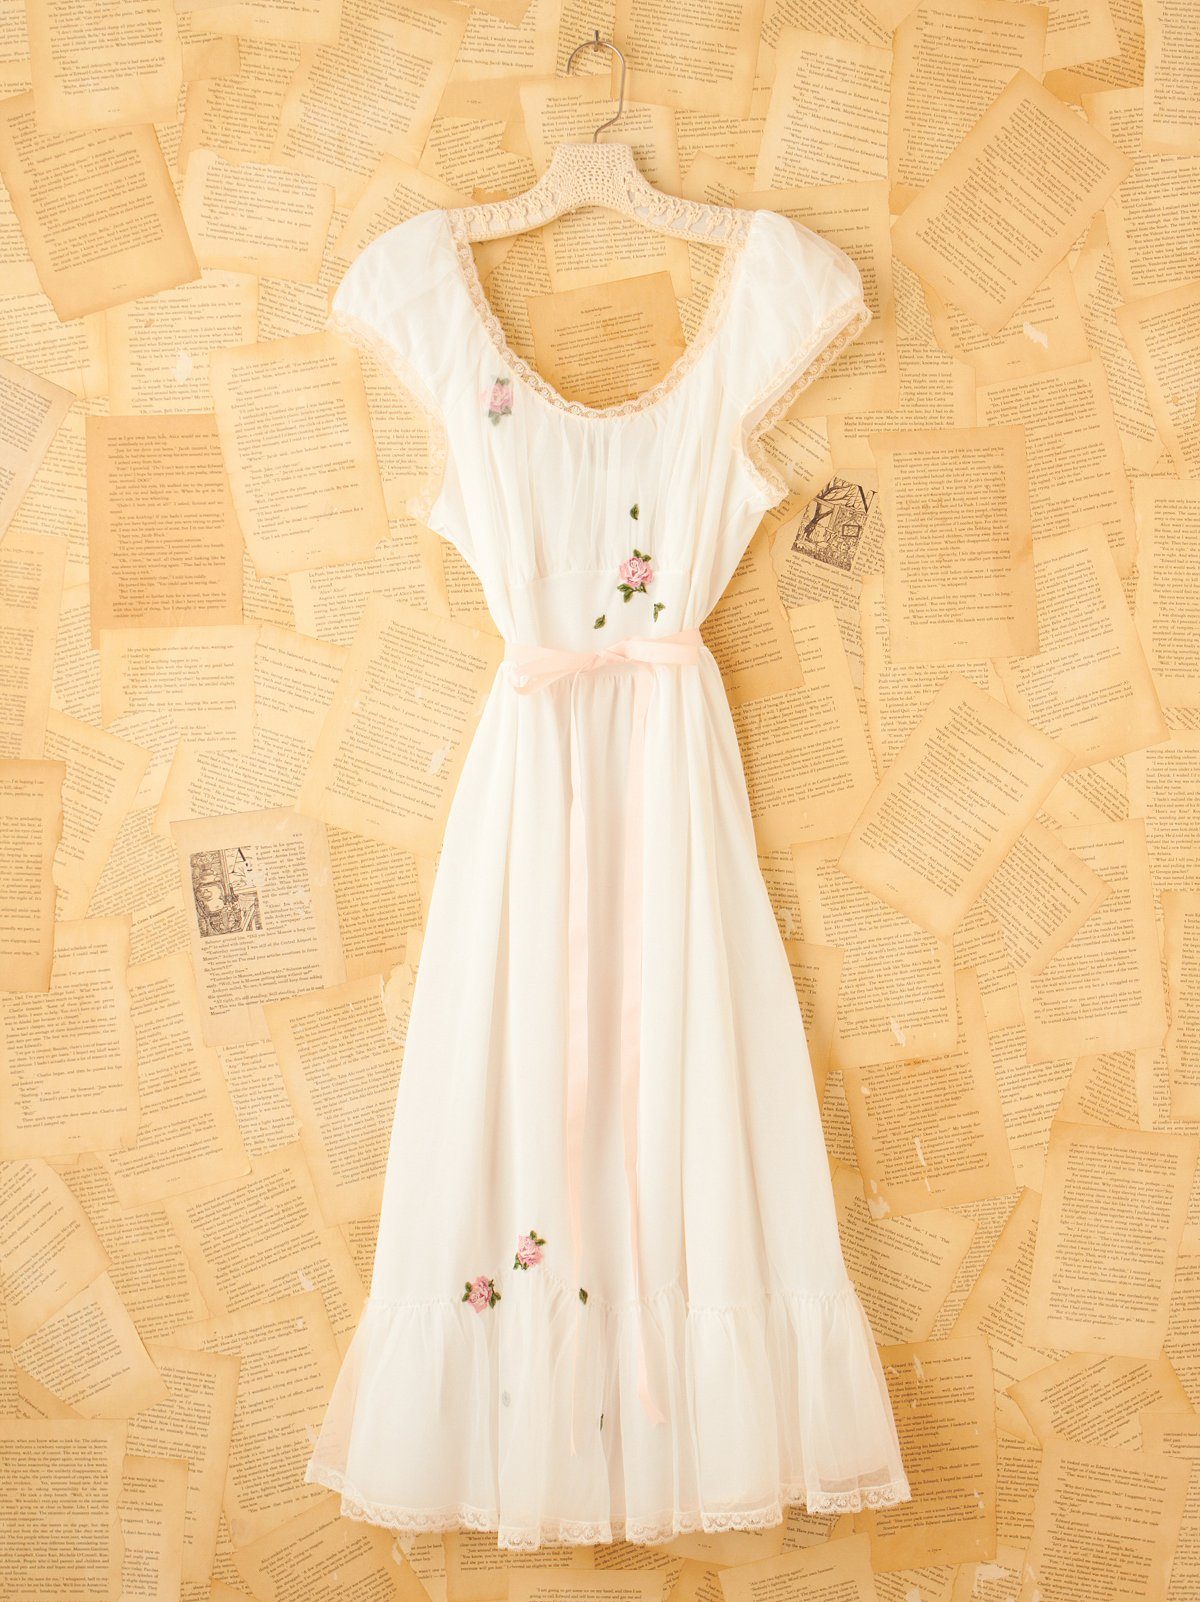 Vintage White Slip Dress with Rose Embroidery